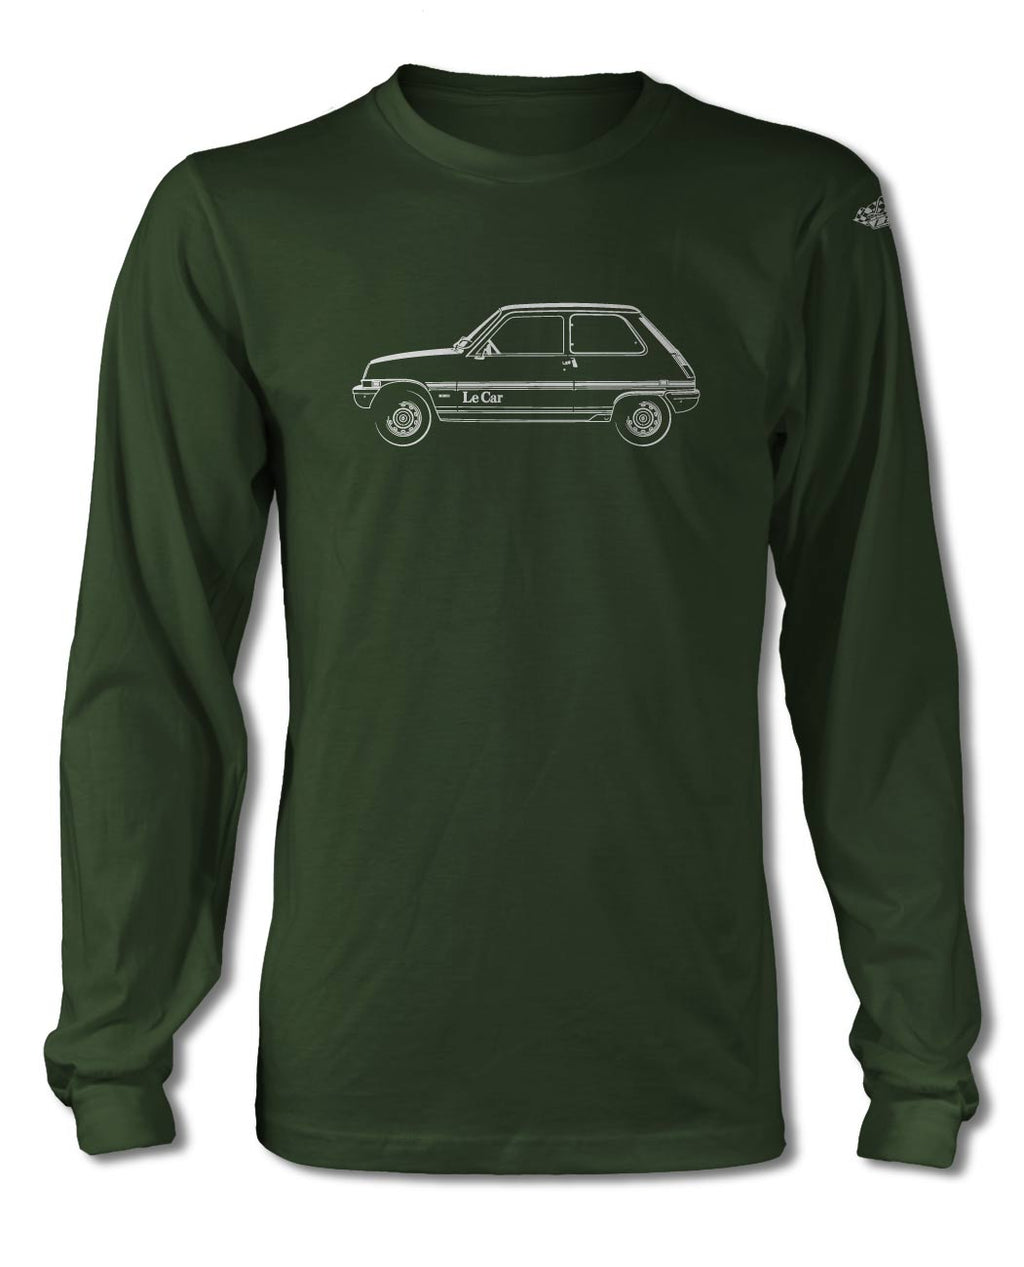 Renault 5 / R5 LeCar T-Shirt - Long Sleeves - Side View